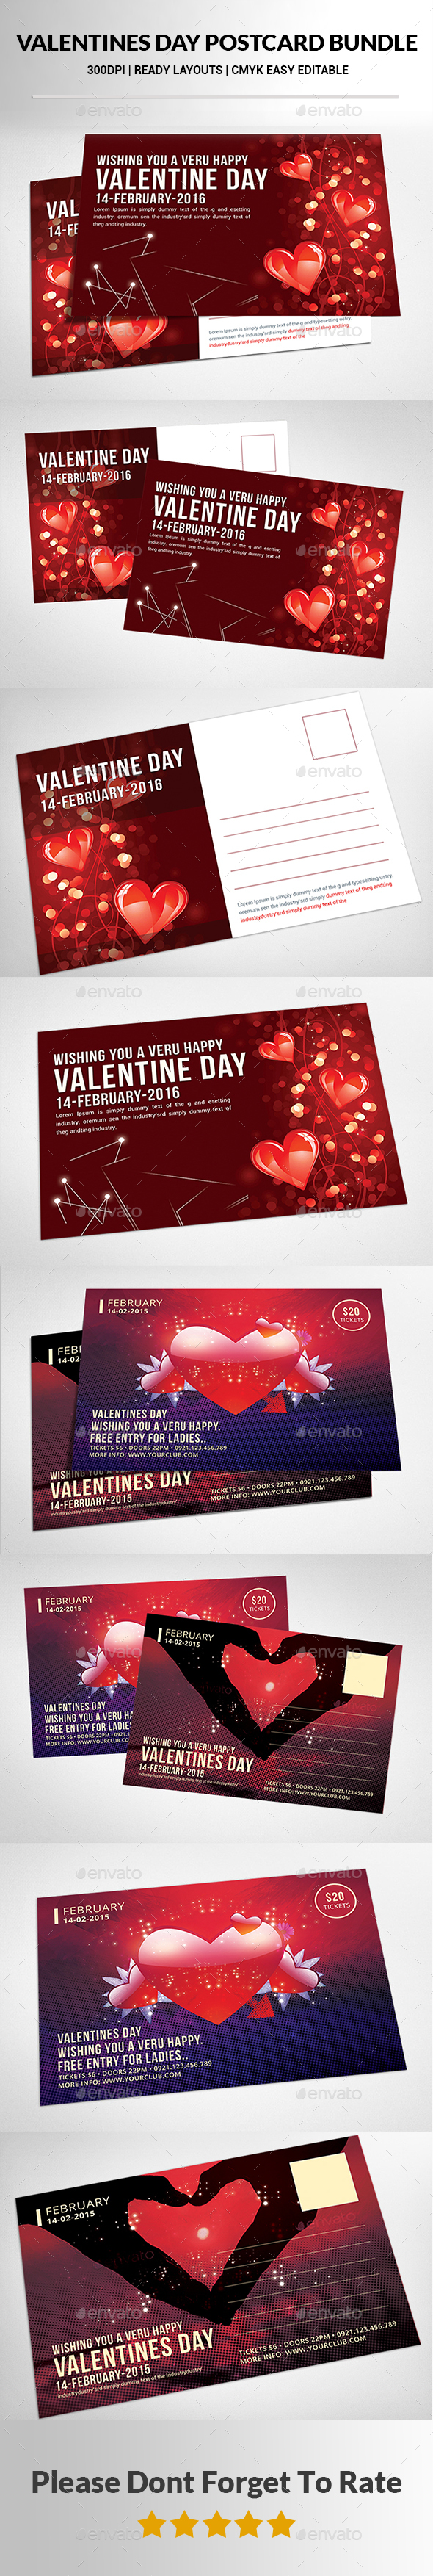 Valentines Day Postcard Bundle  - Cards & Invites Print Templates